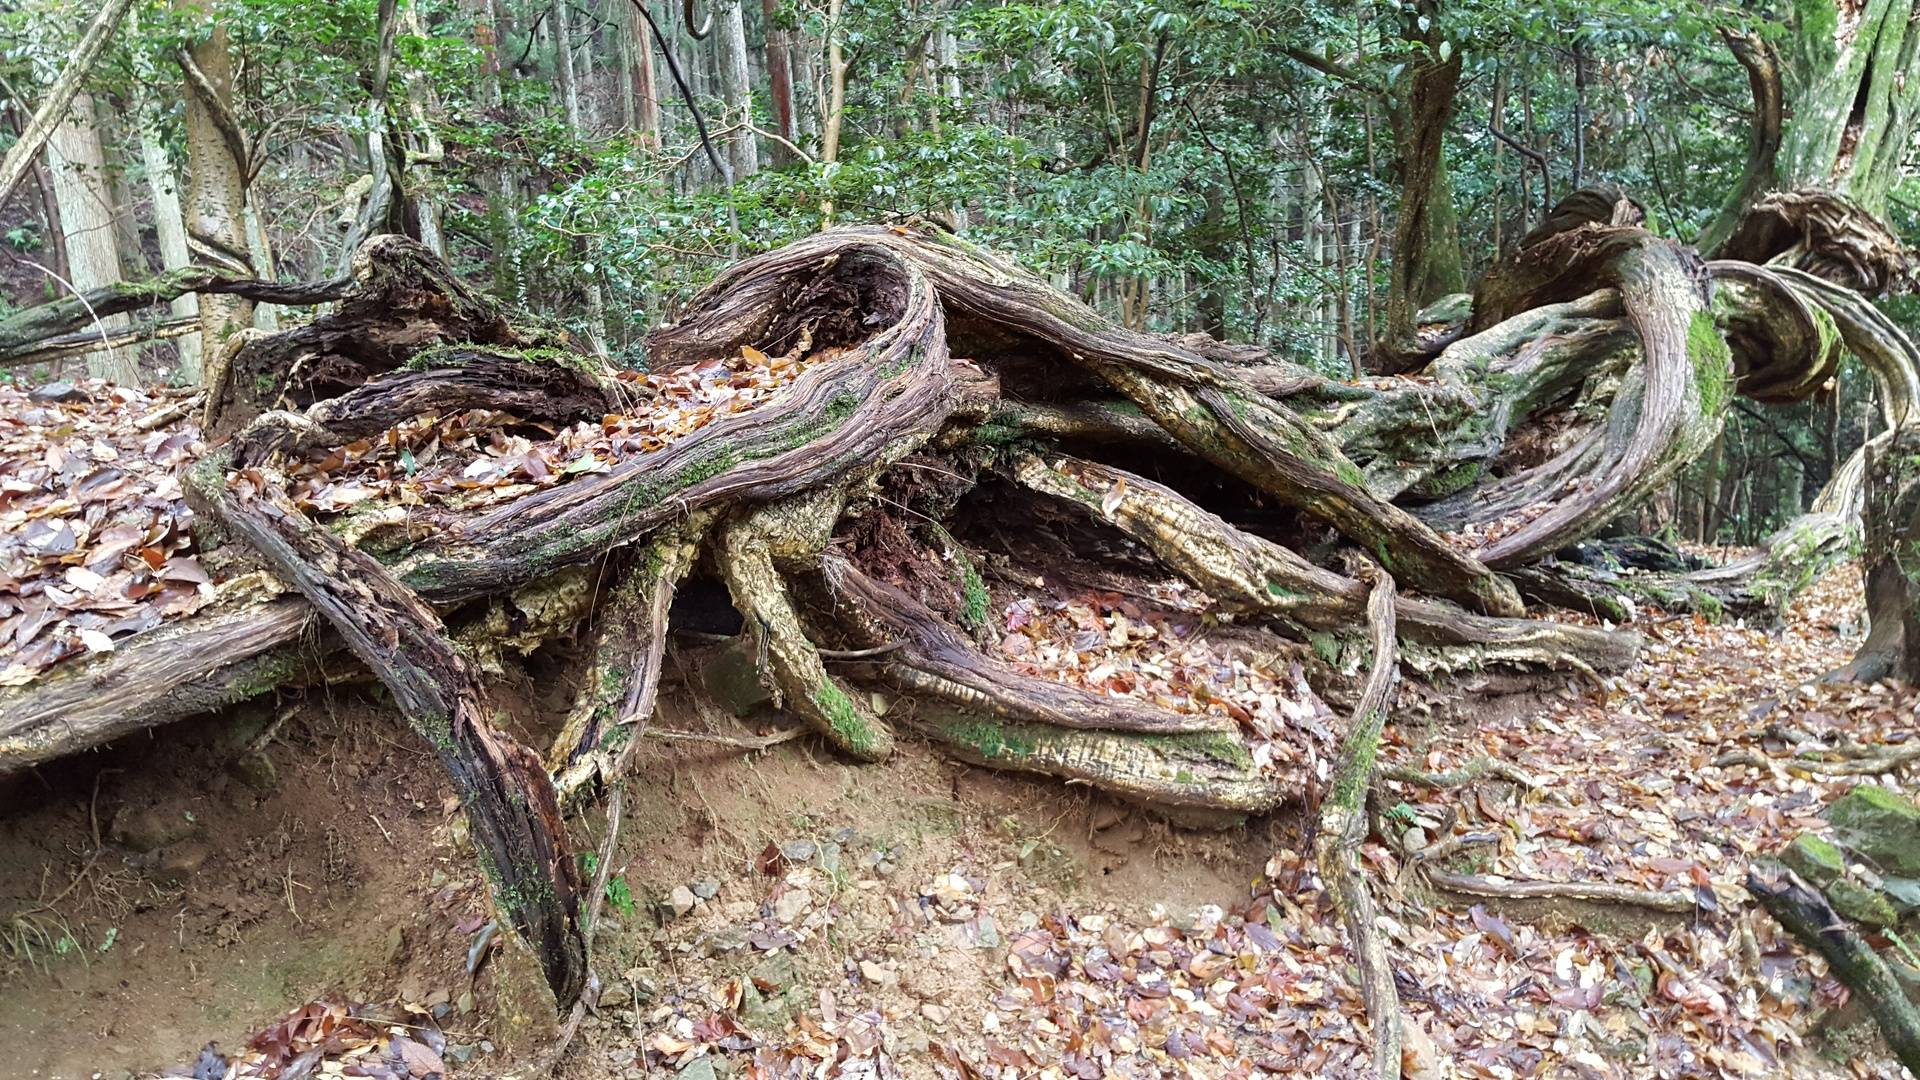 Spectacular roots